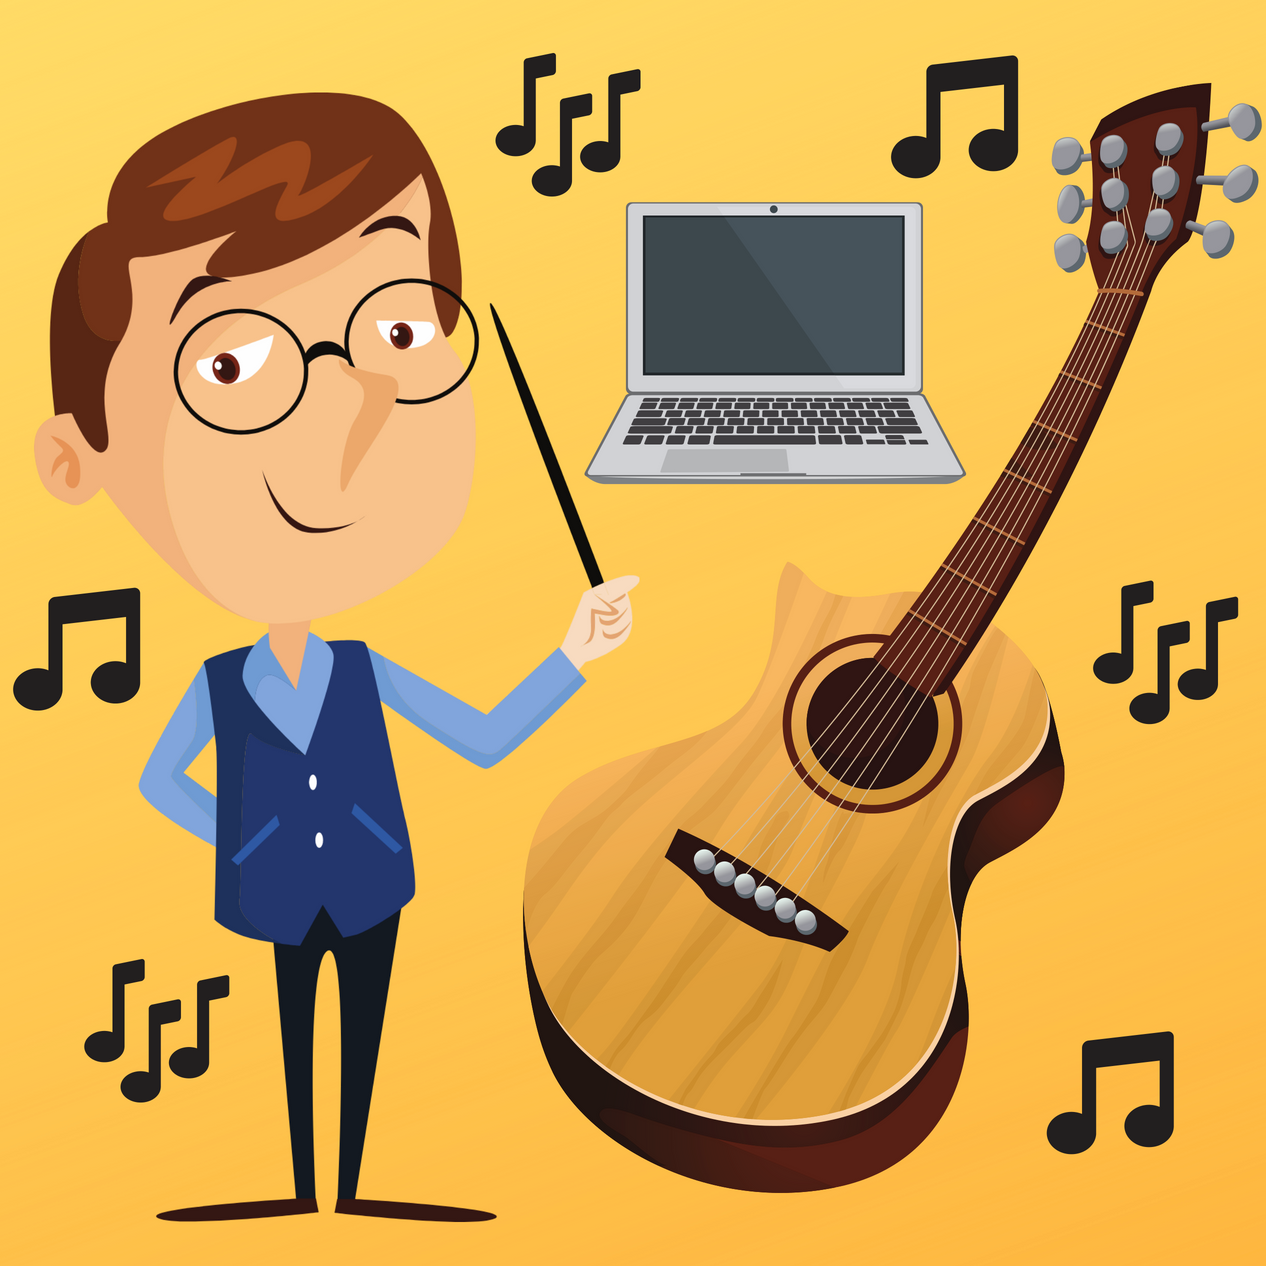 Acoustic Guitar 101 - Learn the 10% you need to know about guitar to play along with 90% of songs. The course was created for beginners, and comes with 3.5 hours of video lectures, walkthroughs, and activities. Learn everything from how to tune the guitar to how to play in all 12 keys.